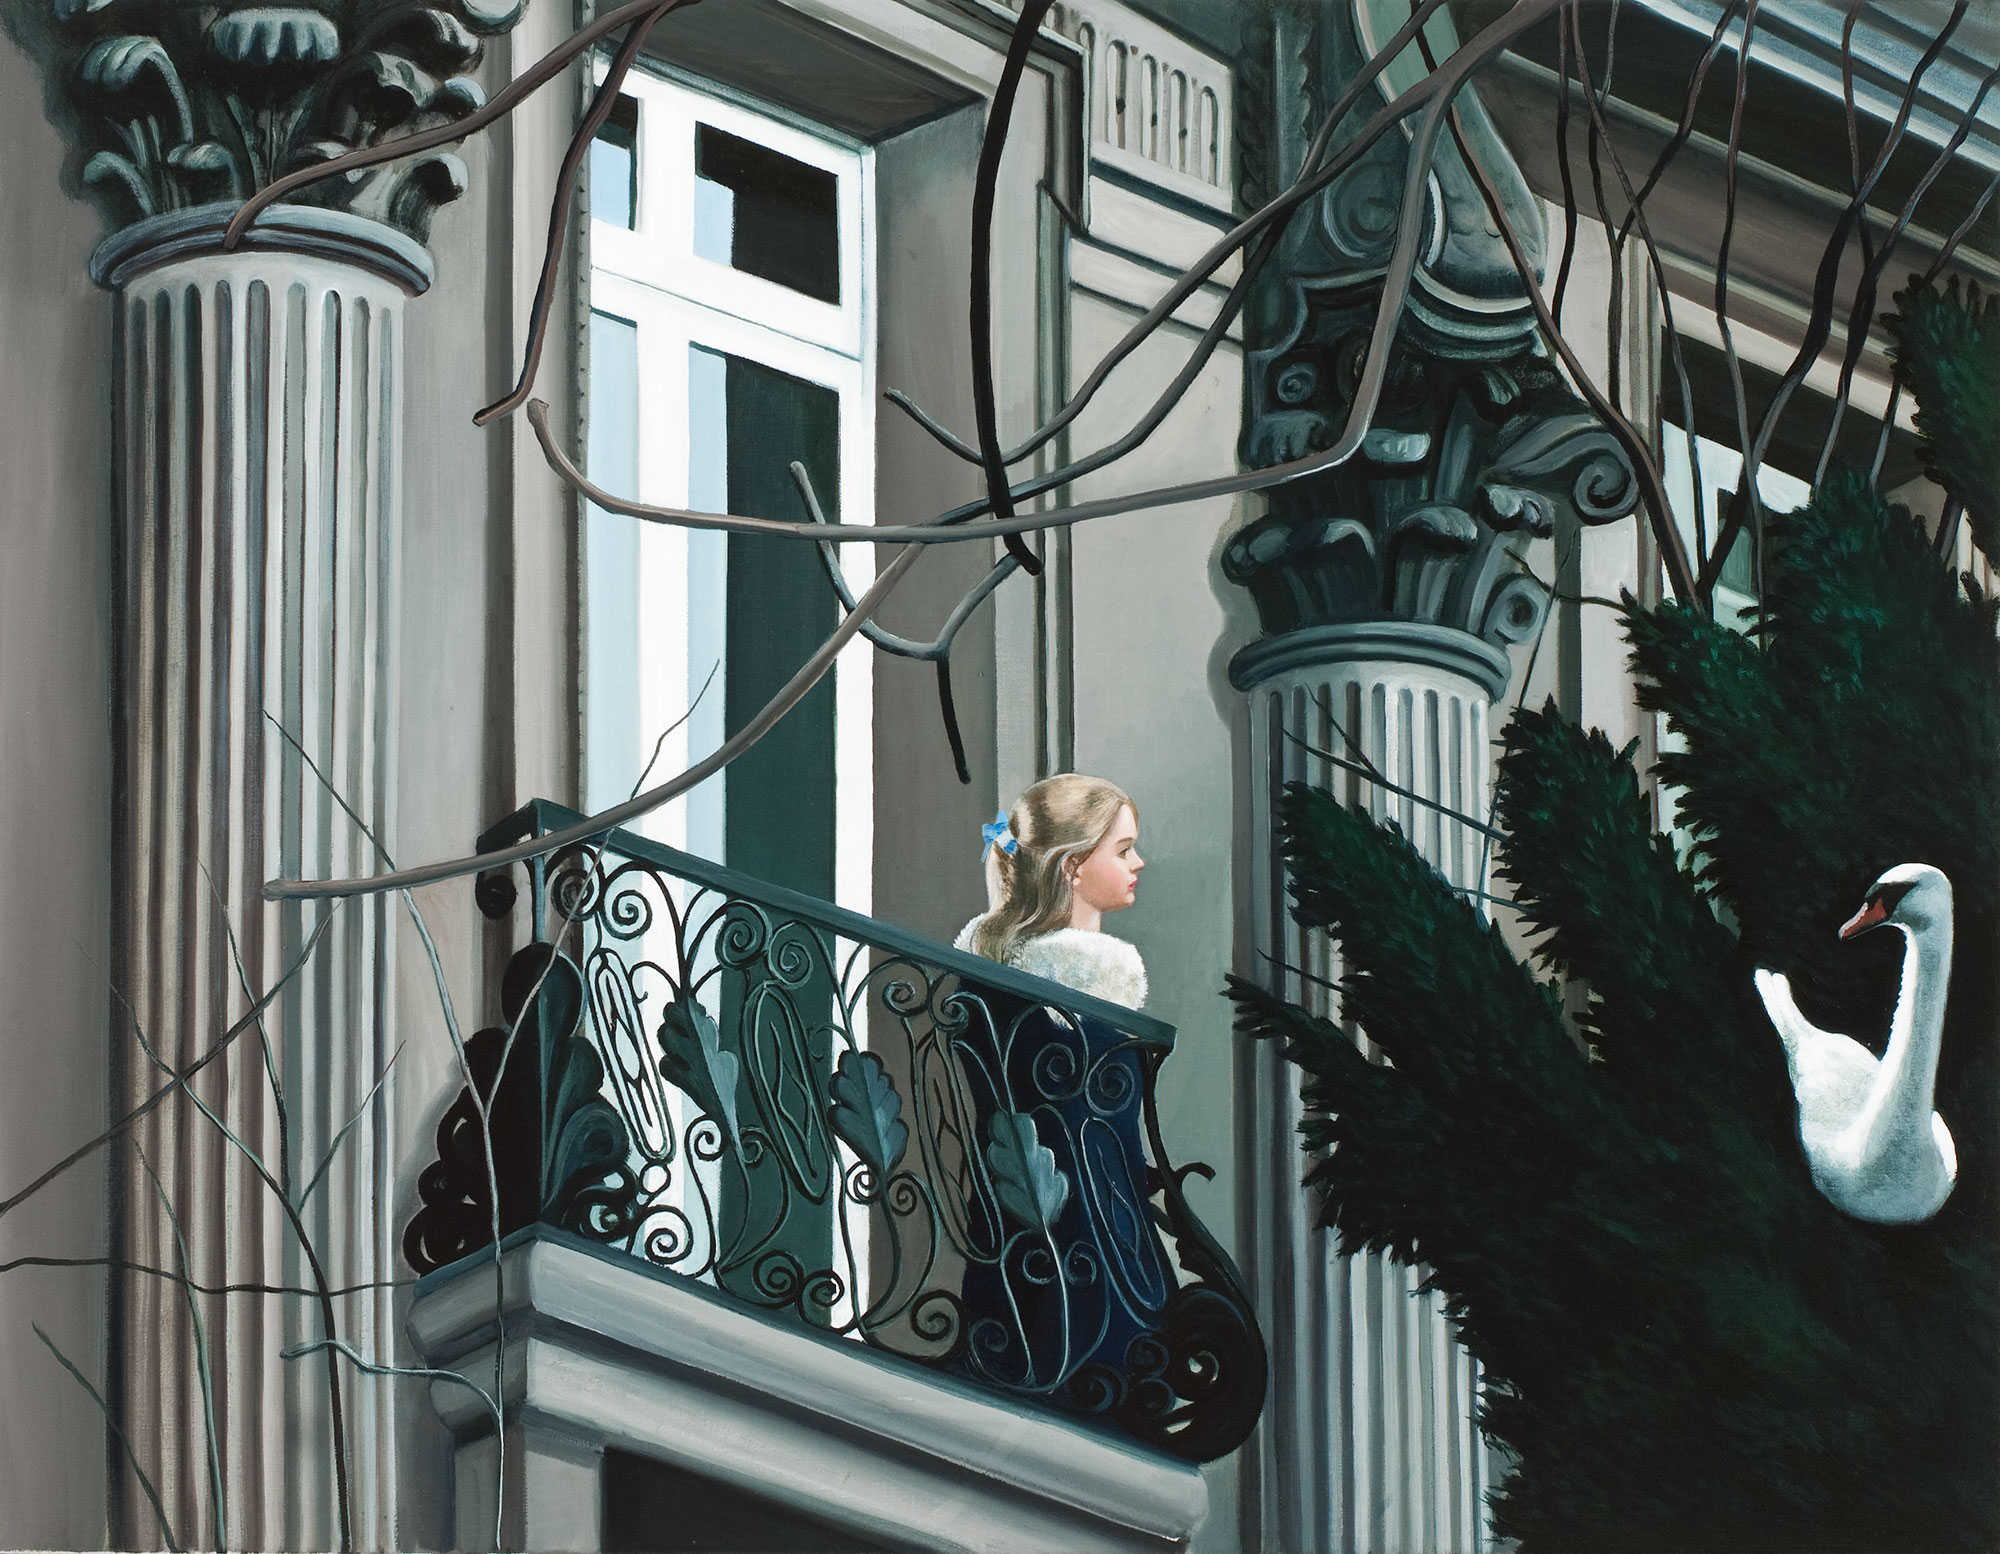 Anne WALLACE 'Rich Girl, Avenue Foch' 2010 | oil on canvas | Collection of Alison Green, Sydney